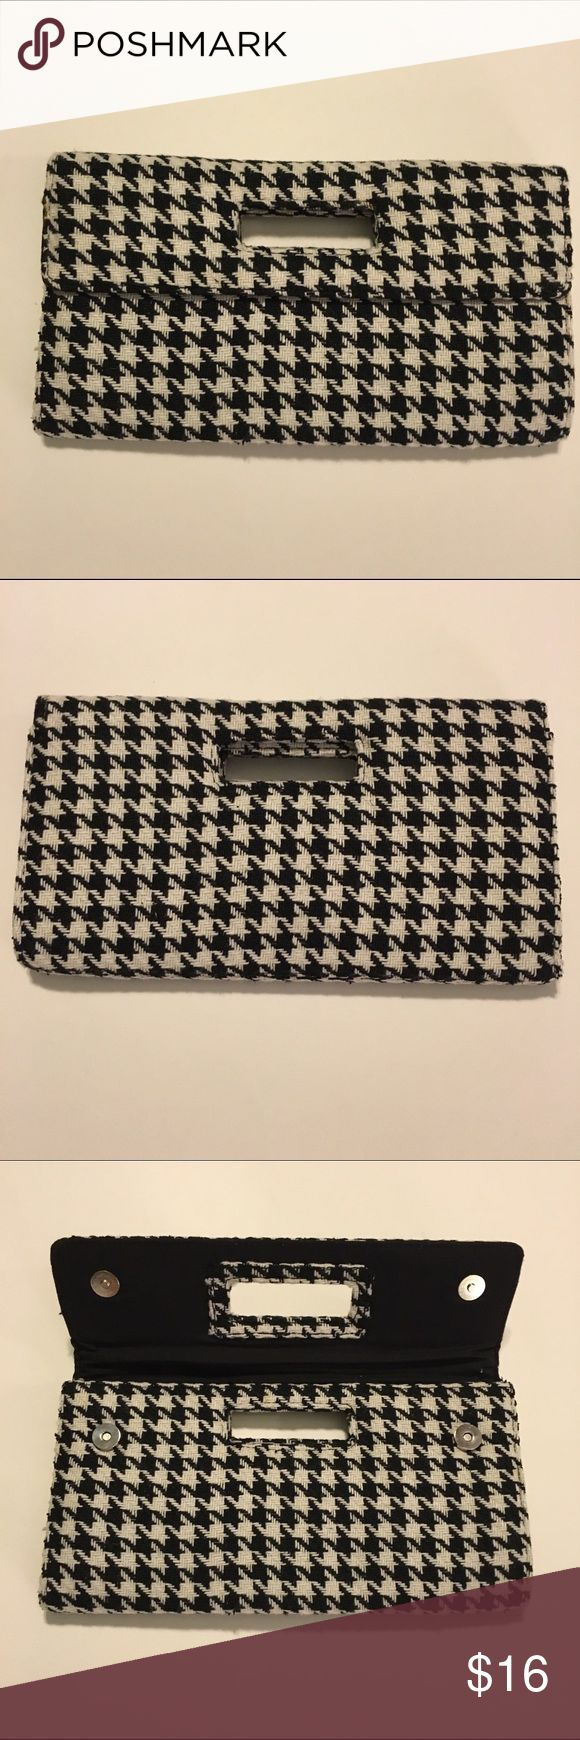 Houndstooth Clutch Houndstooth clutch in great condition! GAP Bags Clutches & Wristlets